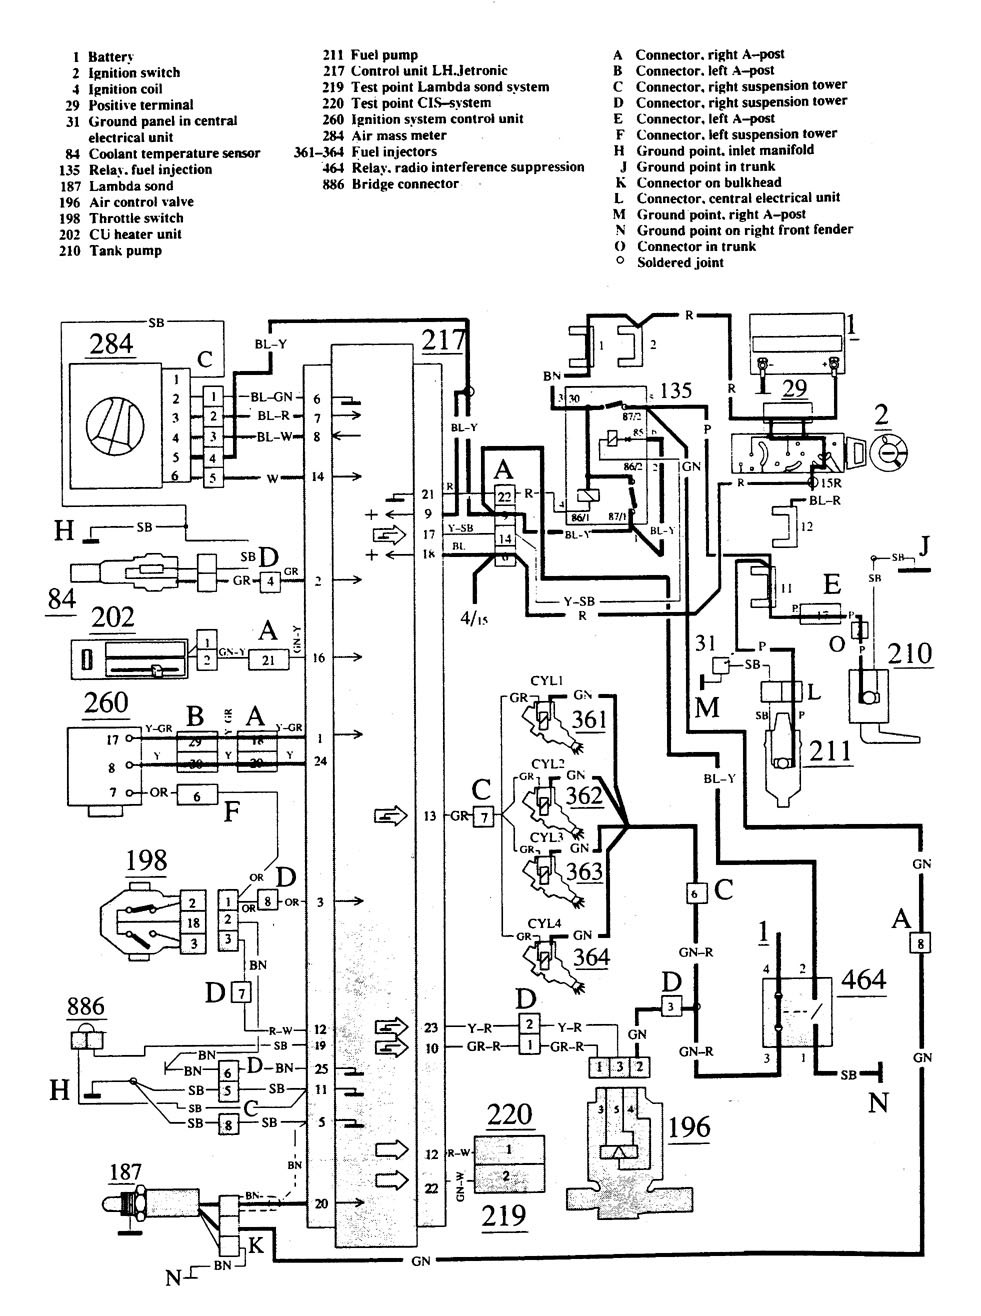 2013 escalade wiring diagram